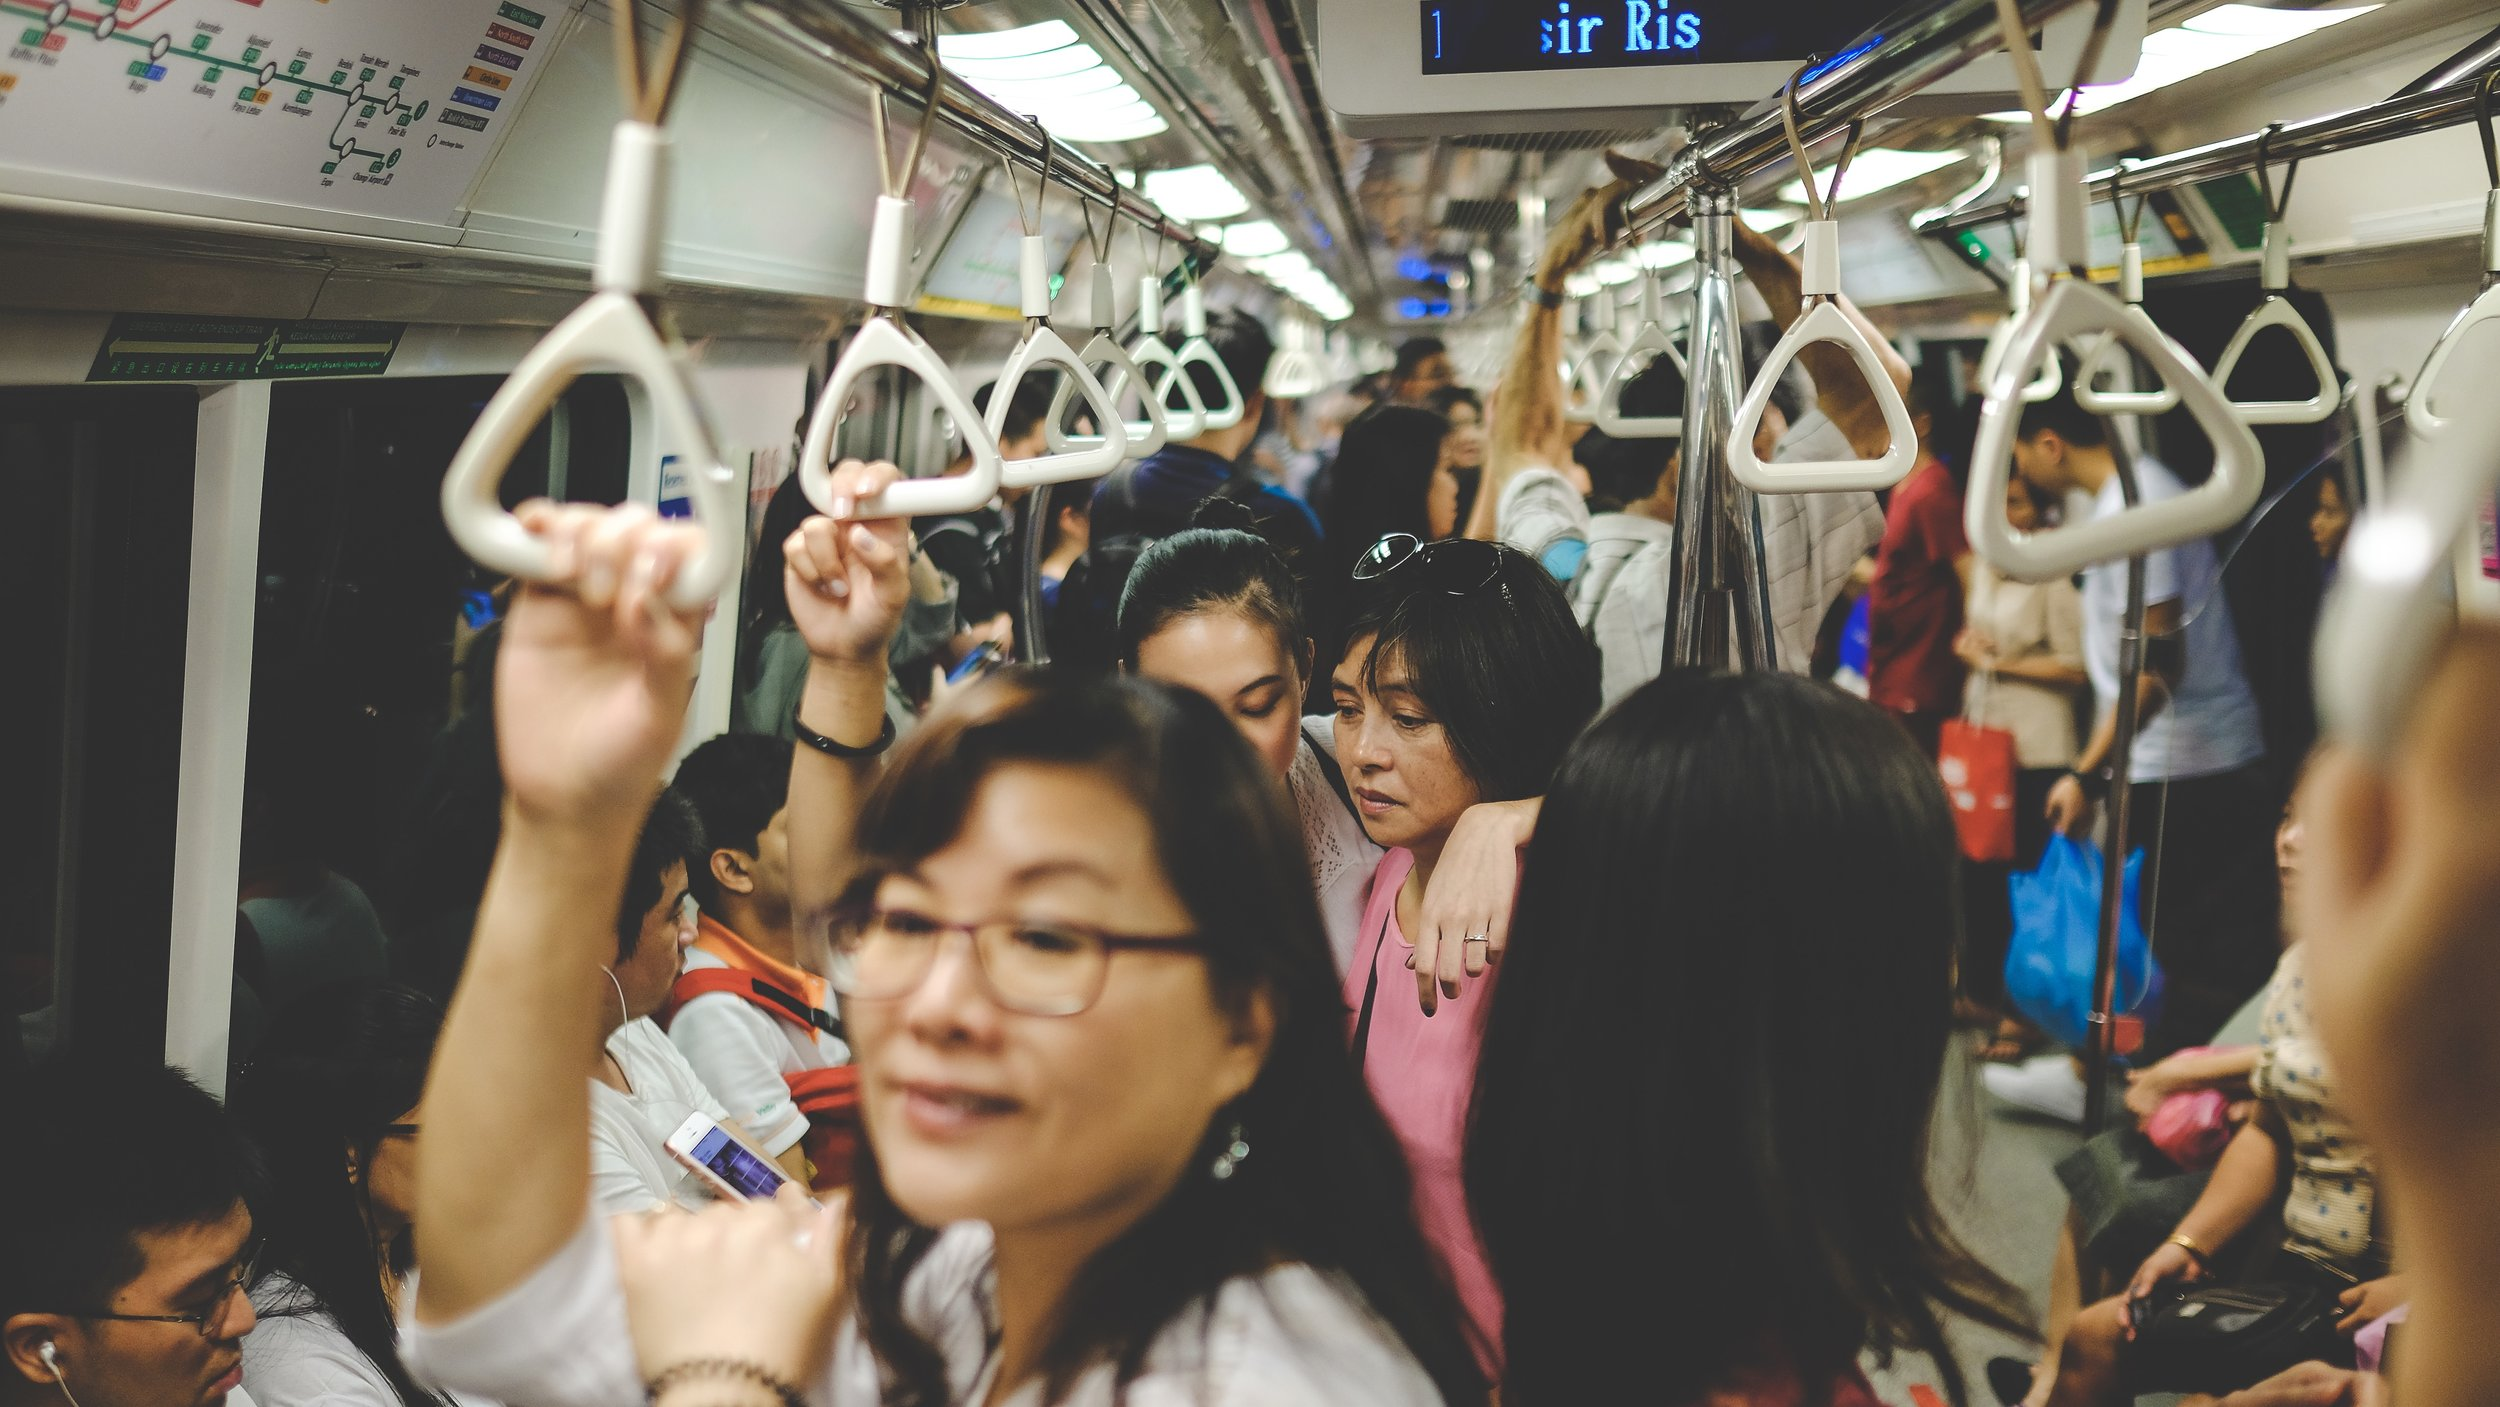 Straphanging city life. Pic by  Chang Hsien